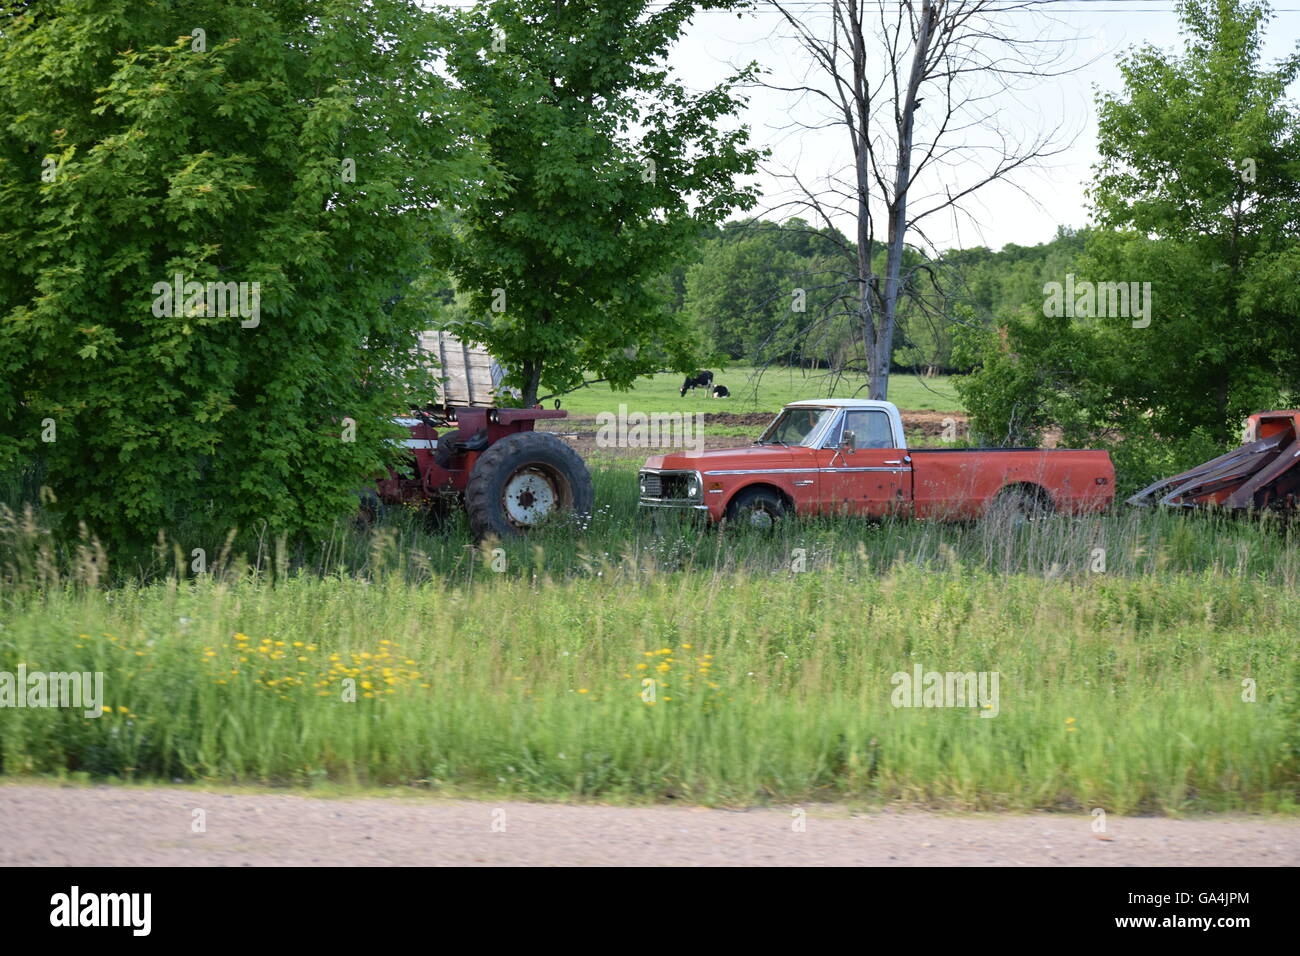 Farm Equipment And An Old Chevy Truck In A Field With A Cow In The